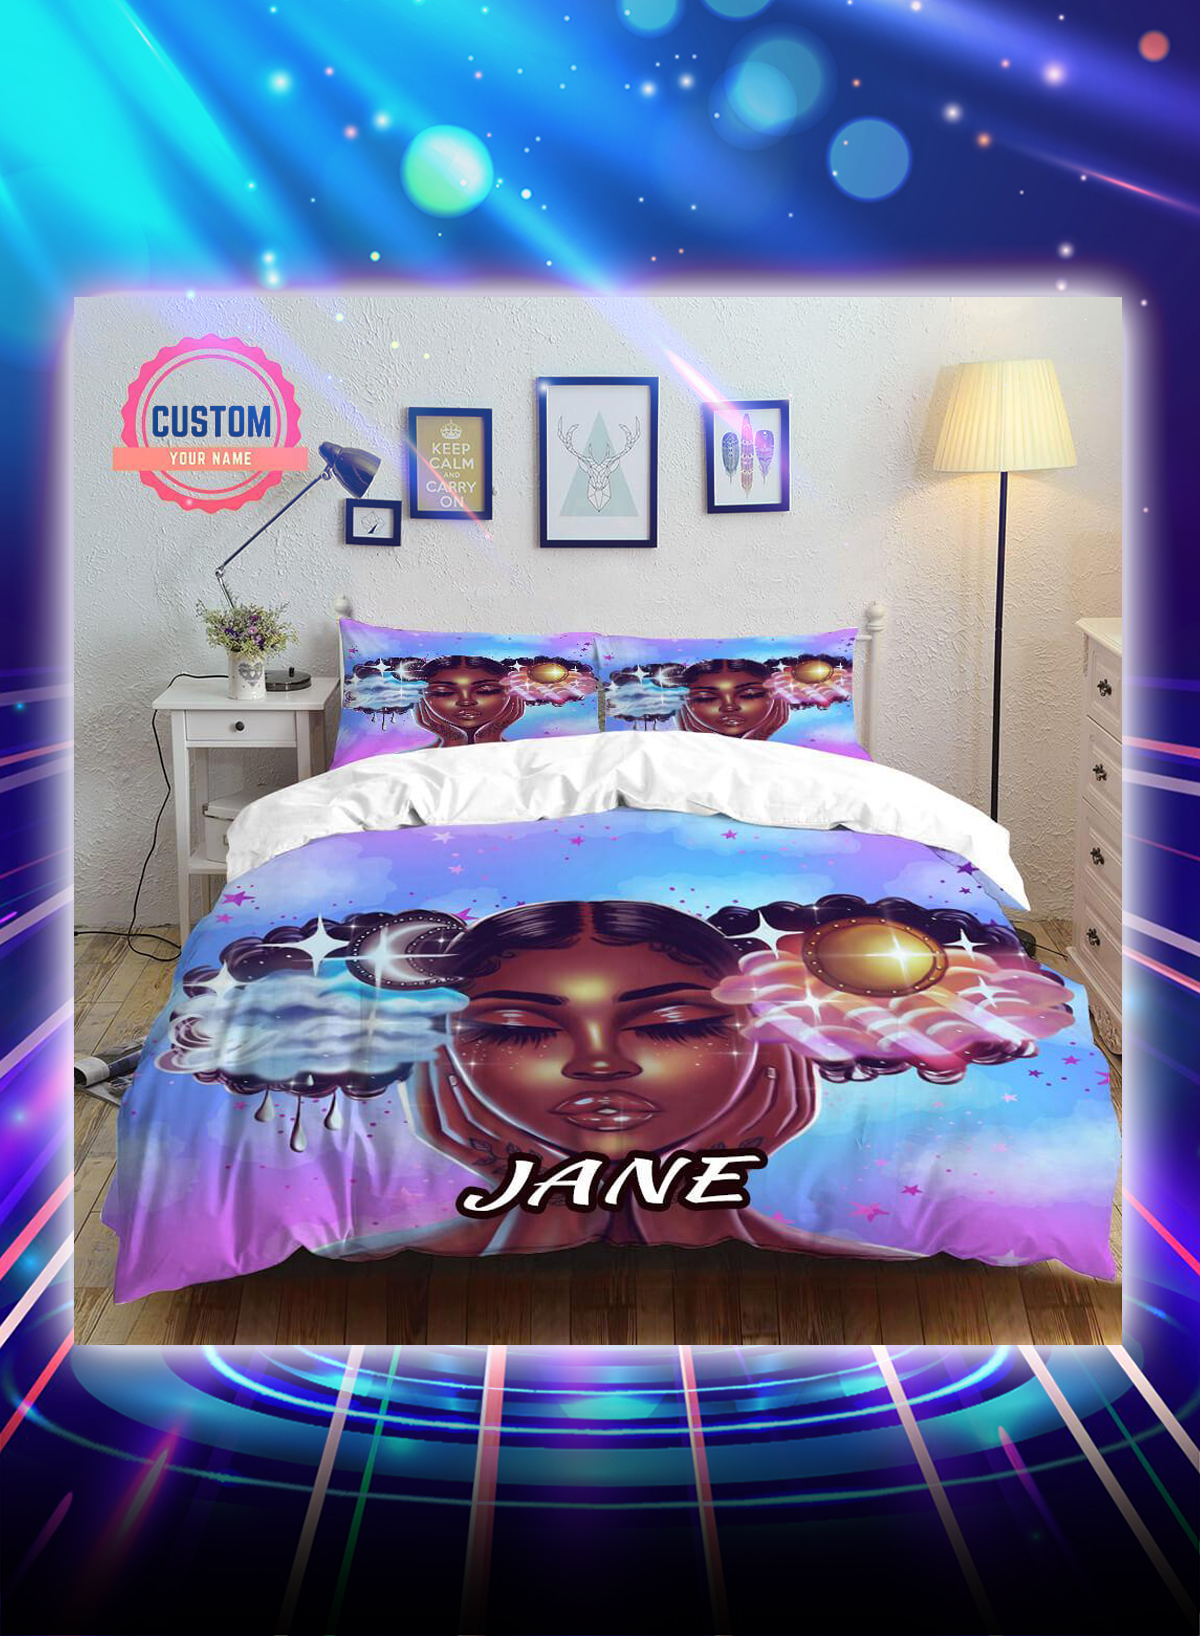 Sun and moon beautiful black girl personalized custom name bed set